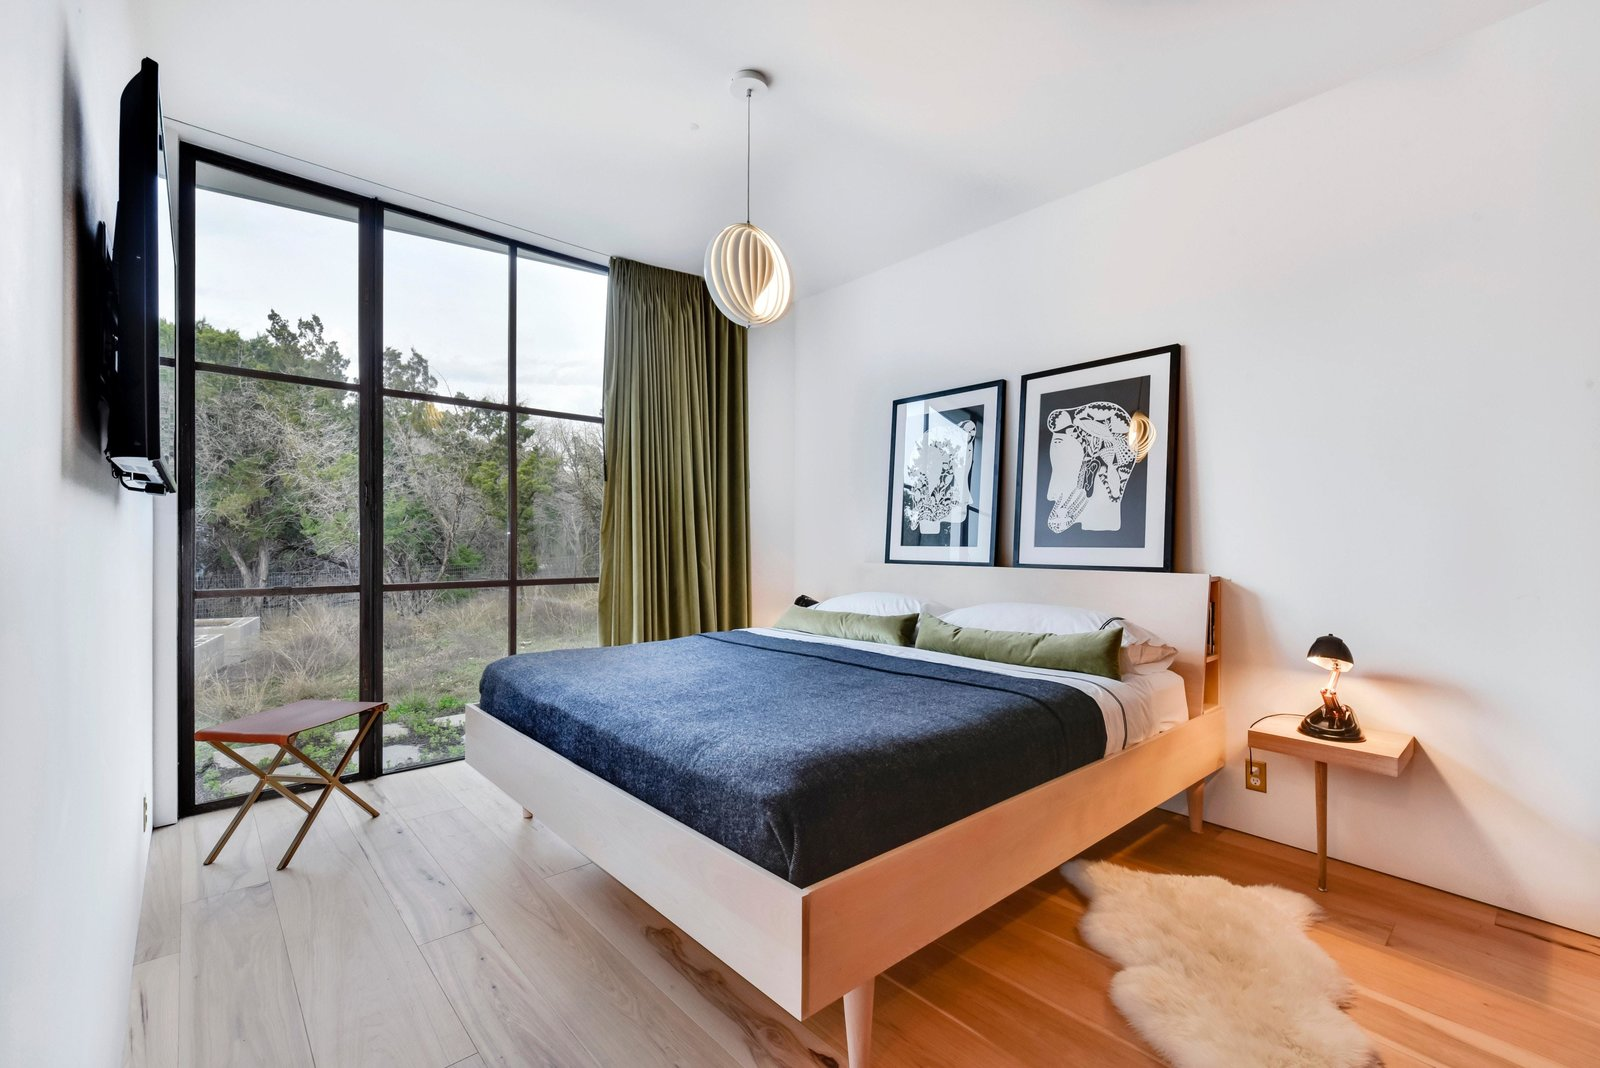 Bedroom, Bed, Pendant Lighting, Medium Hardwood Floor, Night Stands, Table Lighting, and Rug Floor Another bright and minimalist bedroom.  Photo 9 of 22 in Own This Alluring Sculptural Abode in Austin For $3.1M